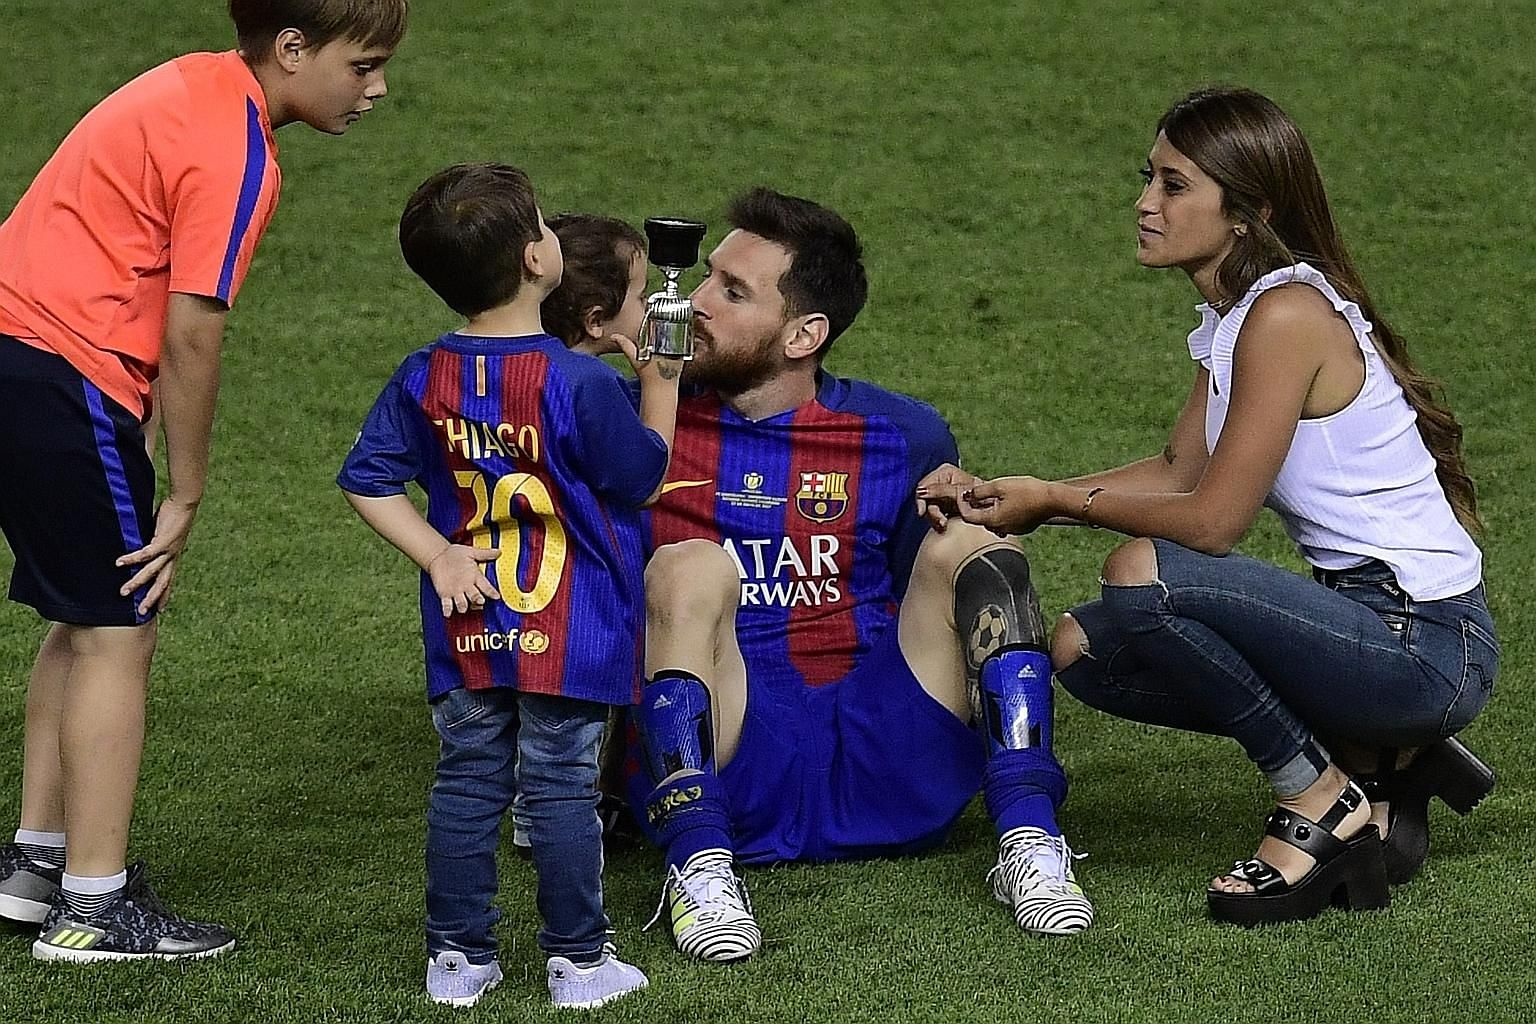 Lionel Messi soaking in the King's Cup final victory over Alaves with his sons and fiancee Antonella Roccuzzo. Barcelona won 3-1 in coach Luis Enrique's last game.